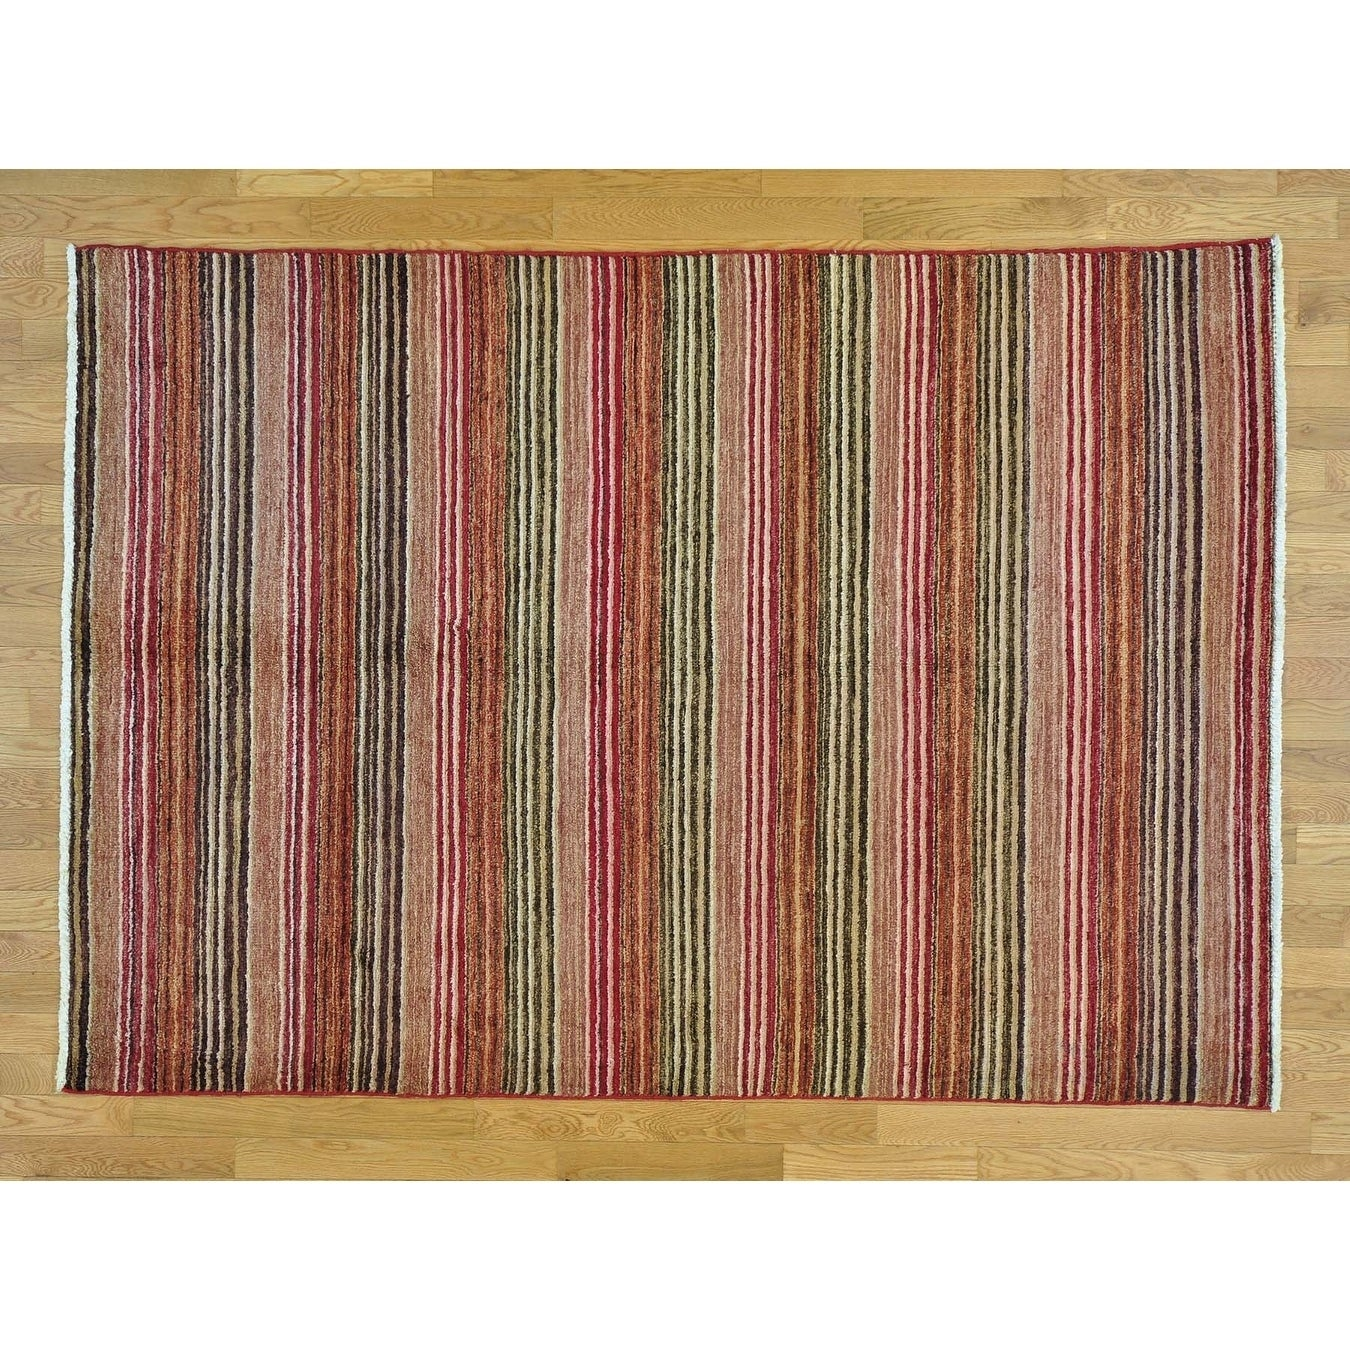 Hand Knotted Multicolored Modern & Contemporary with Wool Oriental Rug - 5'8 x 7'10